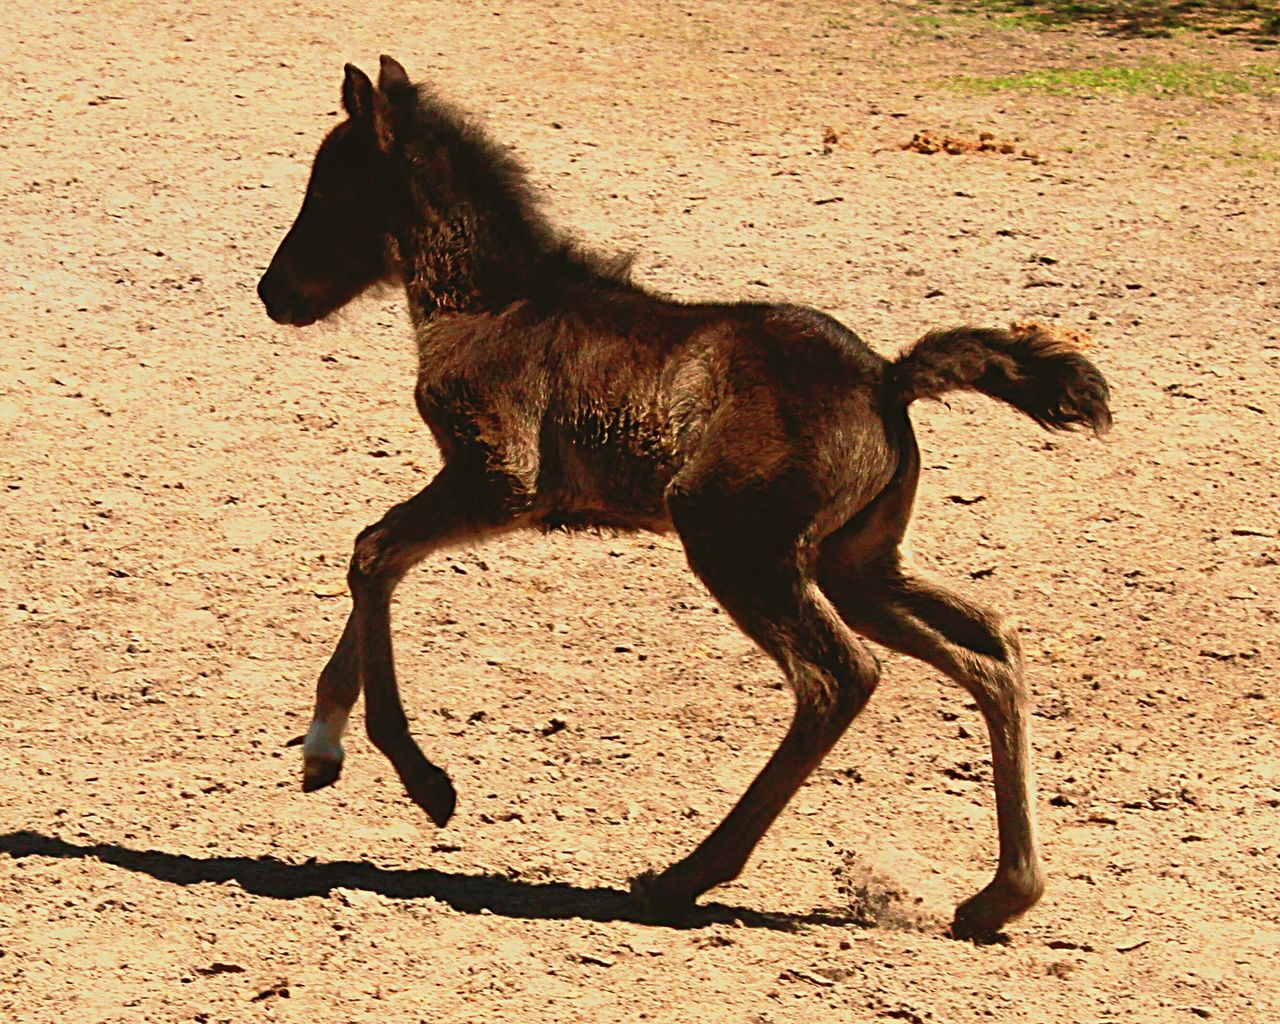 Side View Of A Pony Running On Ground